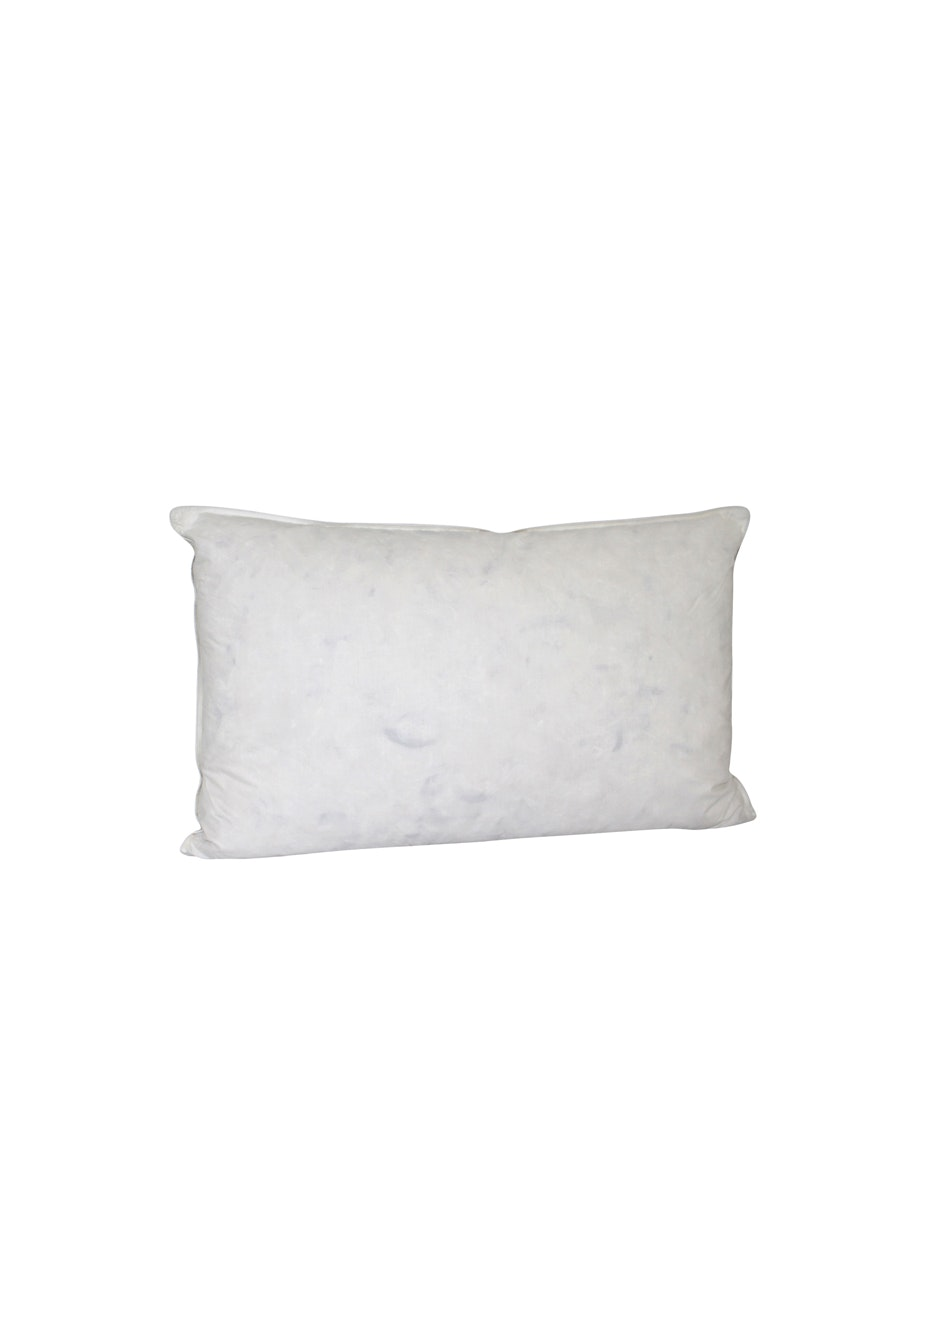 Duck Feather Pillow - 100 GMS with Cotton Cover